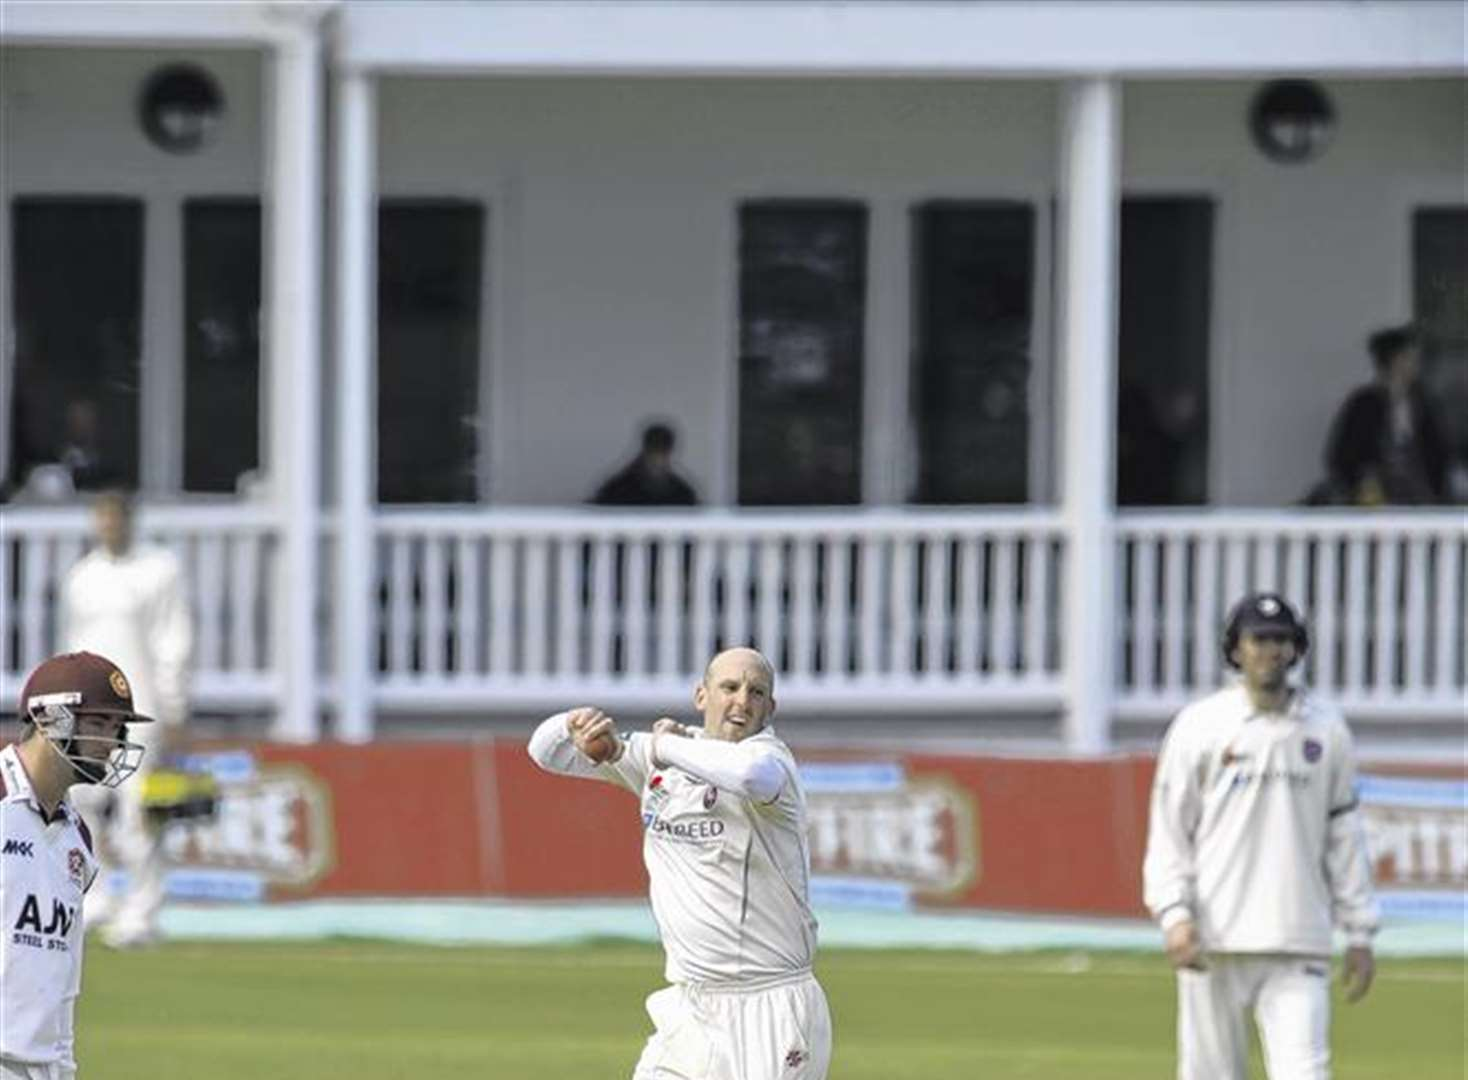 Tredwell earns England contract